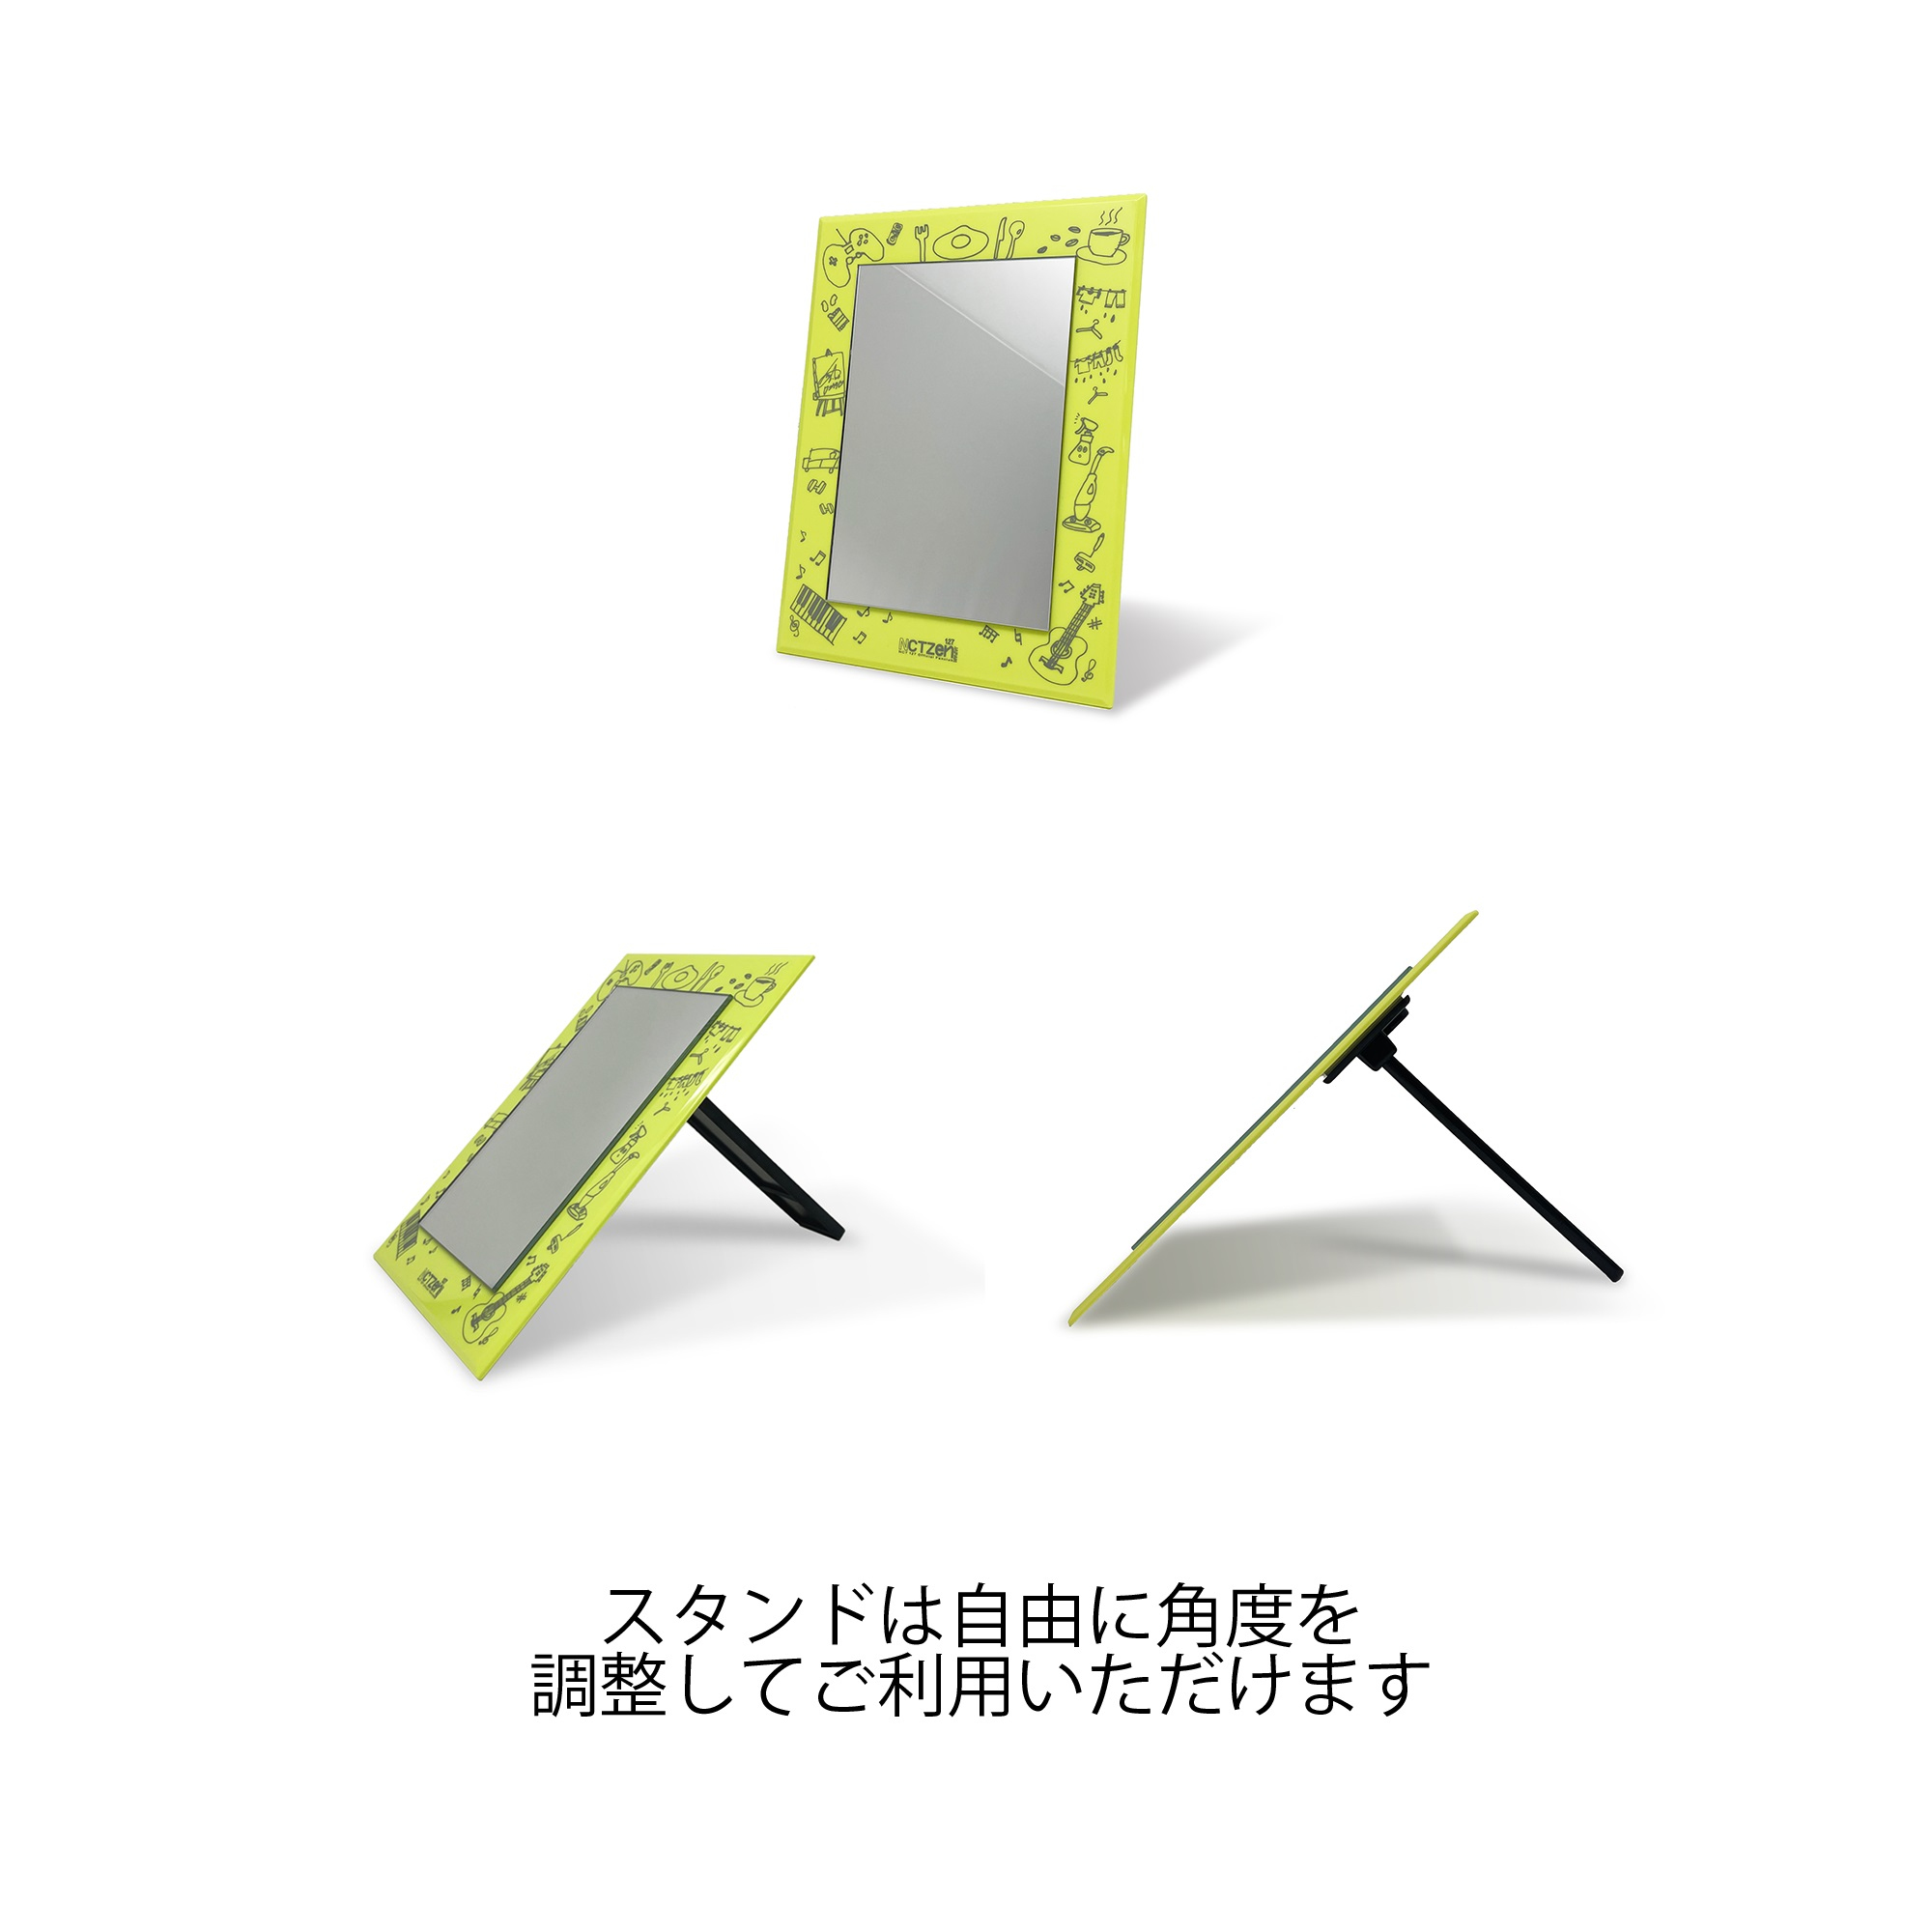 【NCT 127】『NCT 127 OFFICIAL BOOK Vol.4』グッズを、メンバー別に詳しく紹介!_16